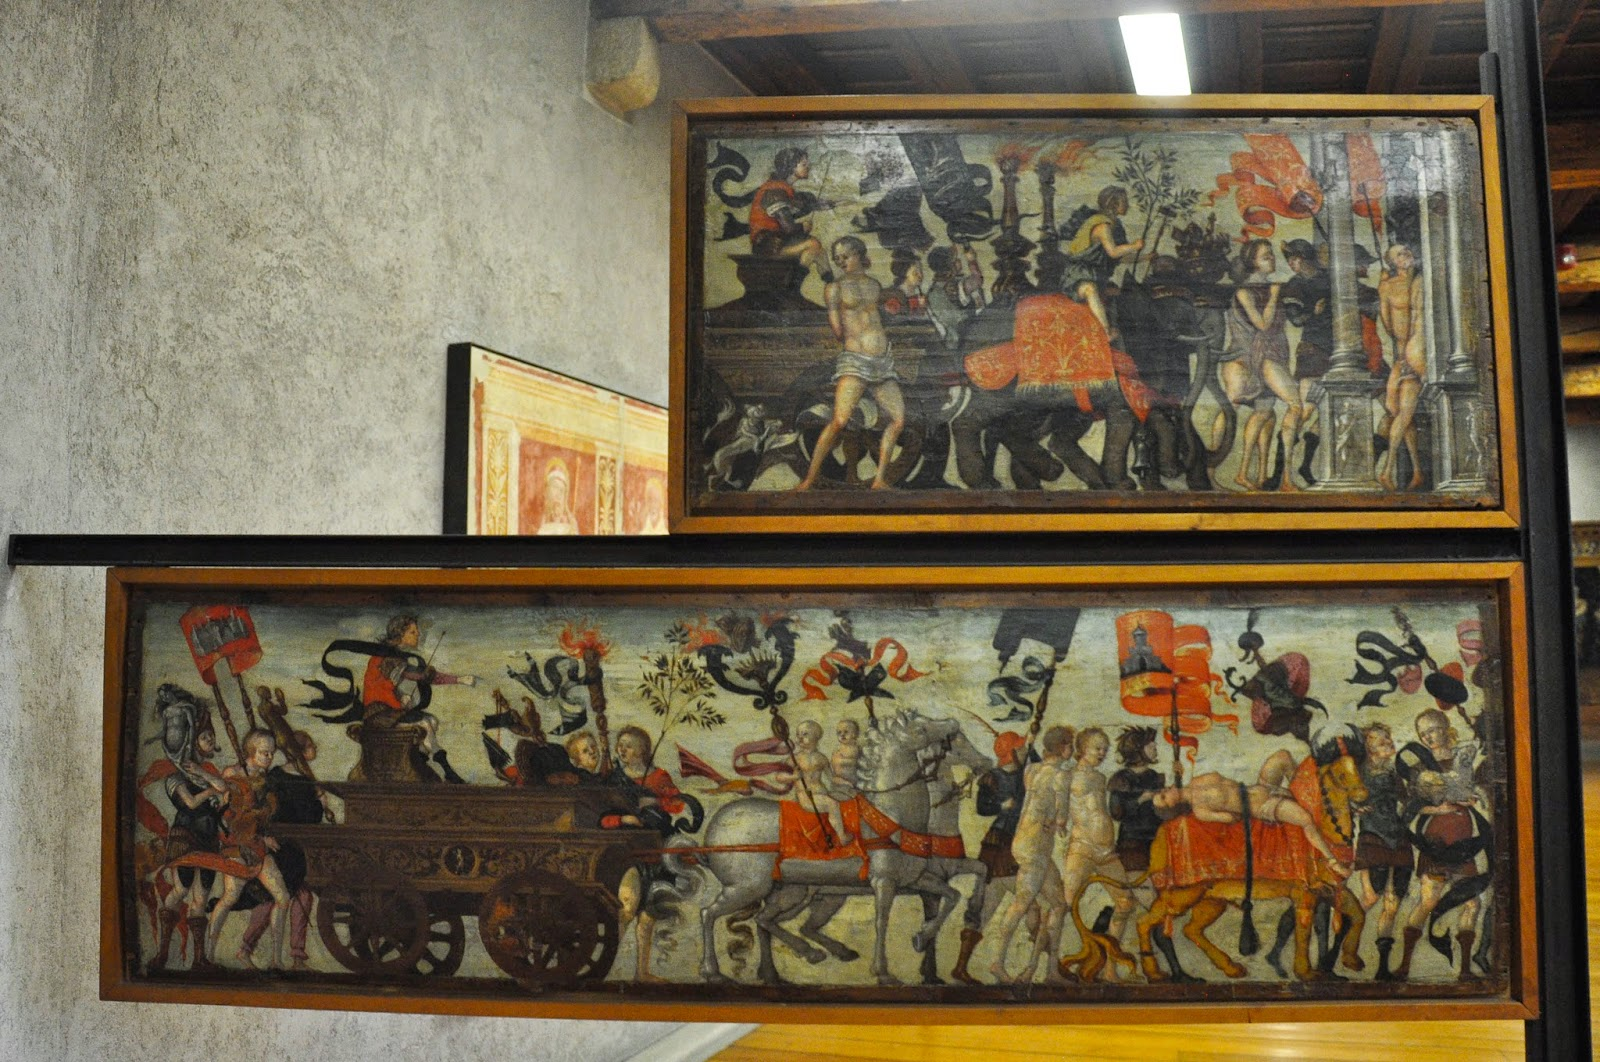 A painting in the Museum of Castelvecchio in Verona